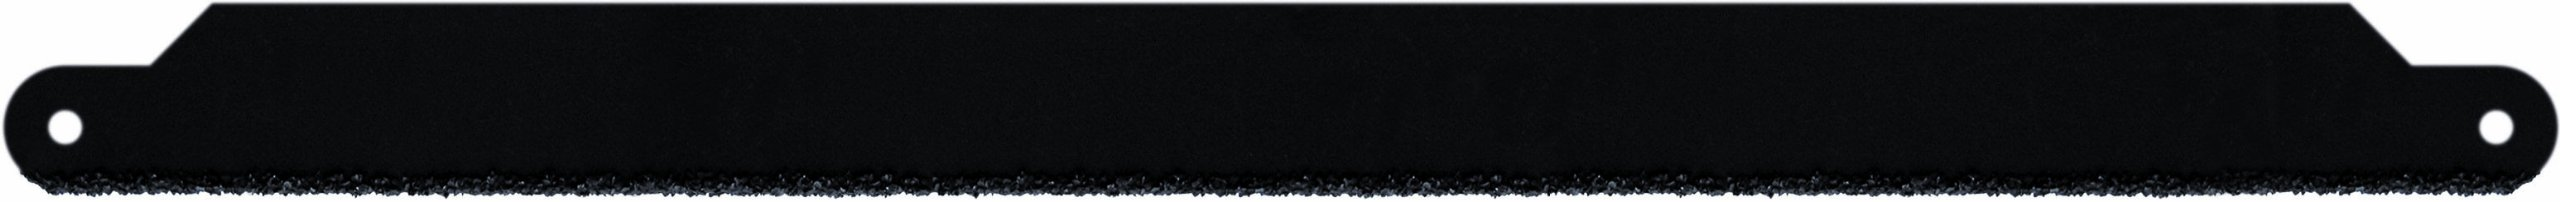 Century Drill and Tool 4640 Carbide Grit Hacksaw Blade, 10-Inch by Century Drill & Tool (Image #1)